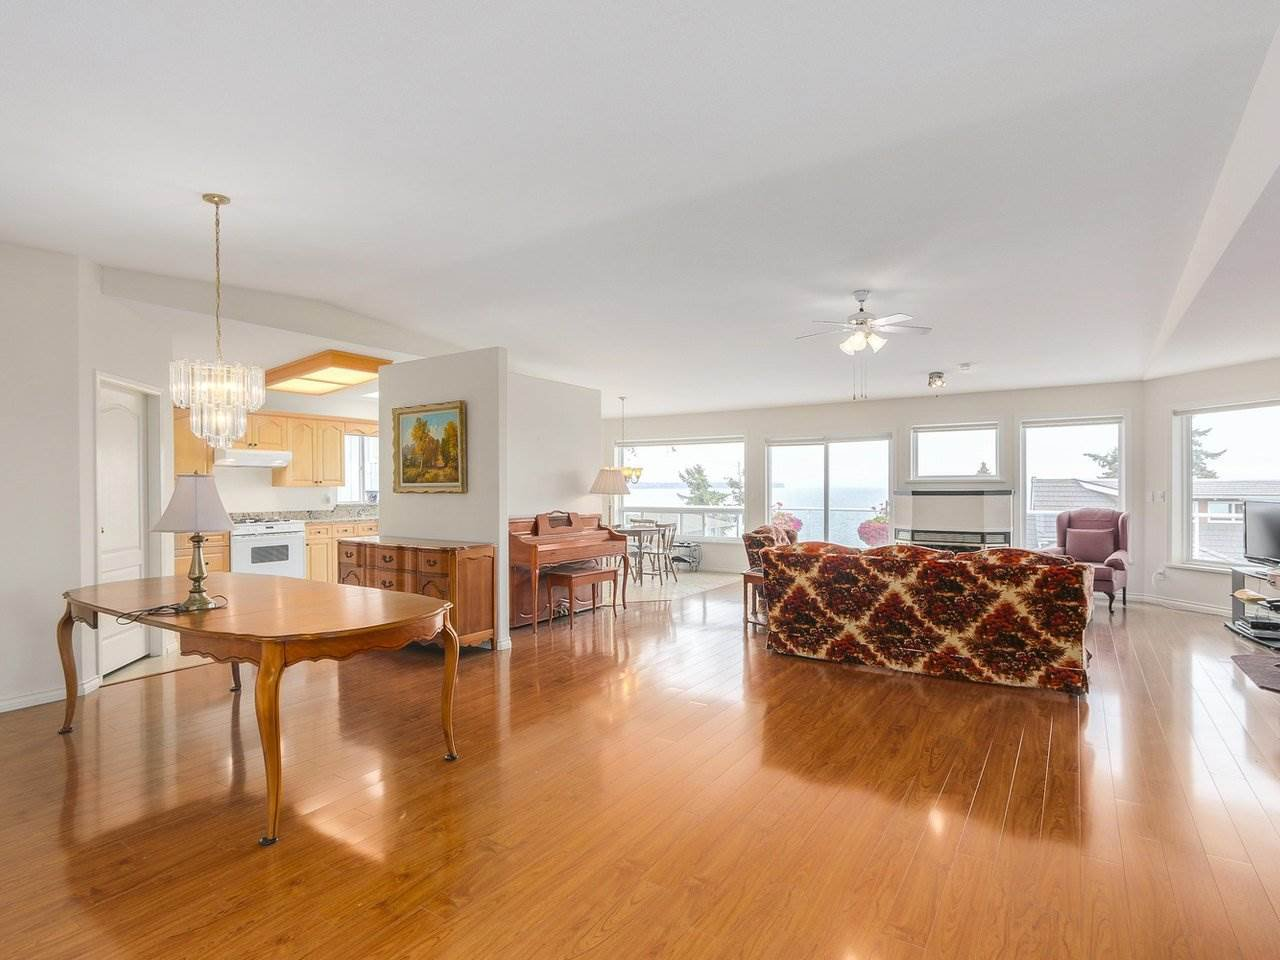 Photo 2: Photos: 1325 132B Street in Surrey: Crescent Bch Ocean Pk. House for sale (South Surrey White Rock)  : MLS®# R2185643